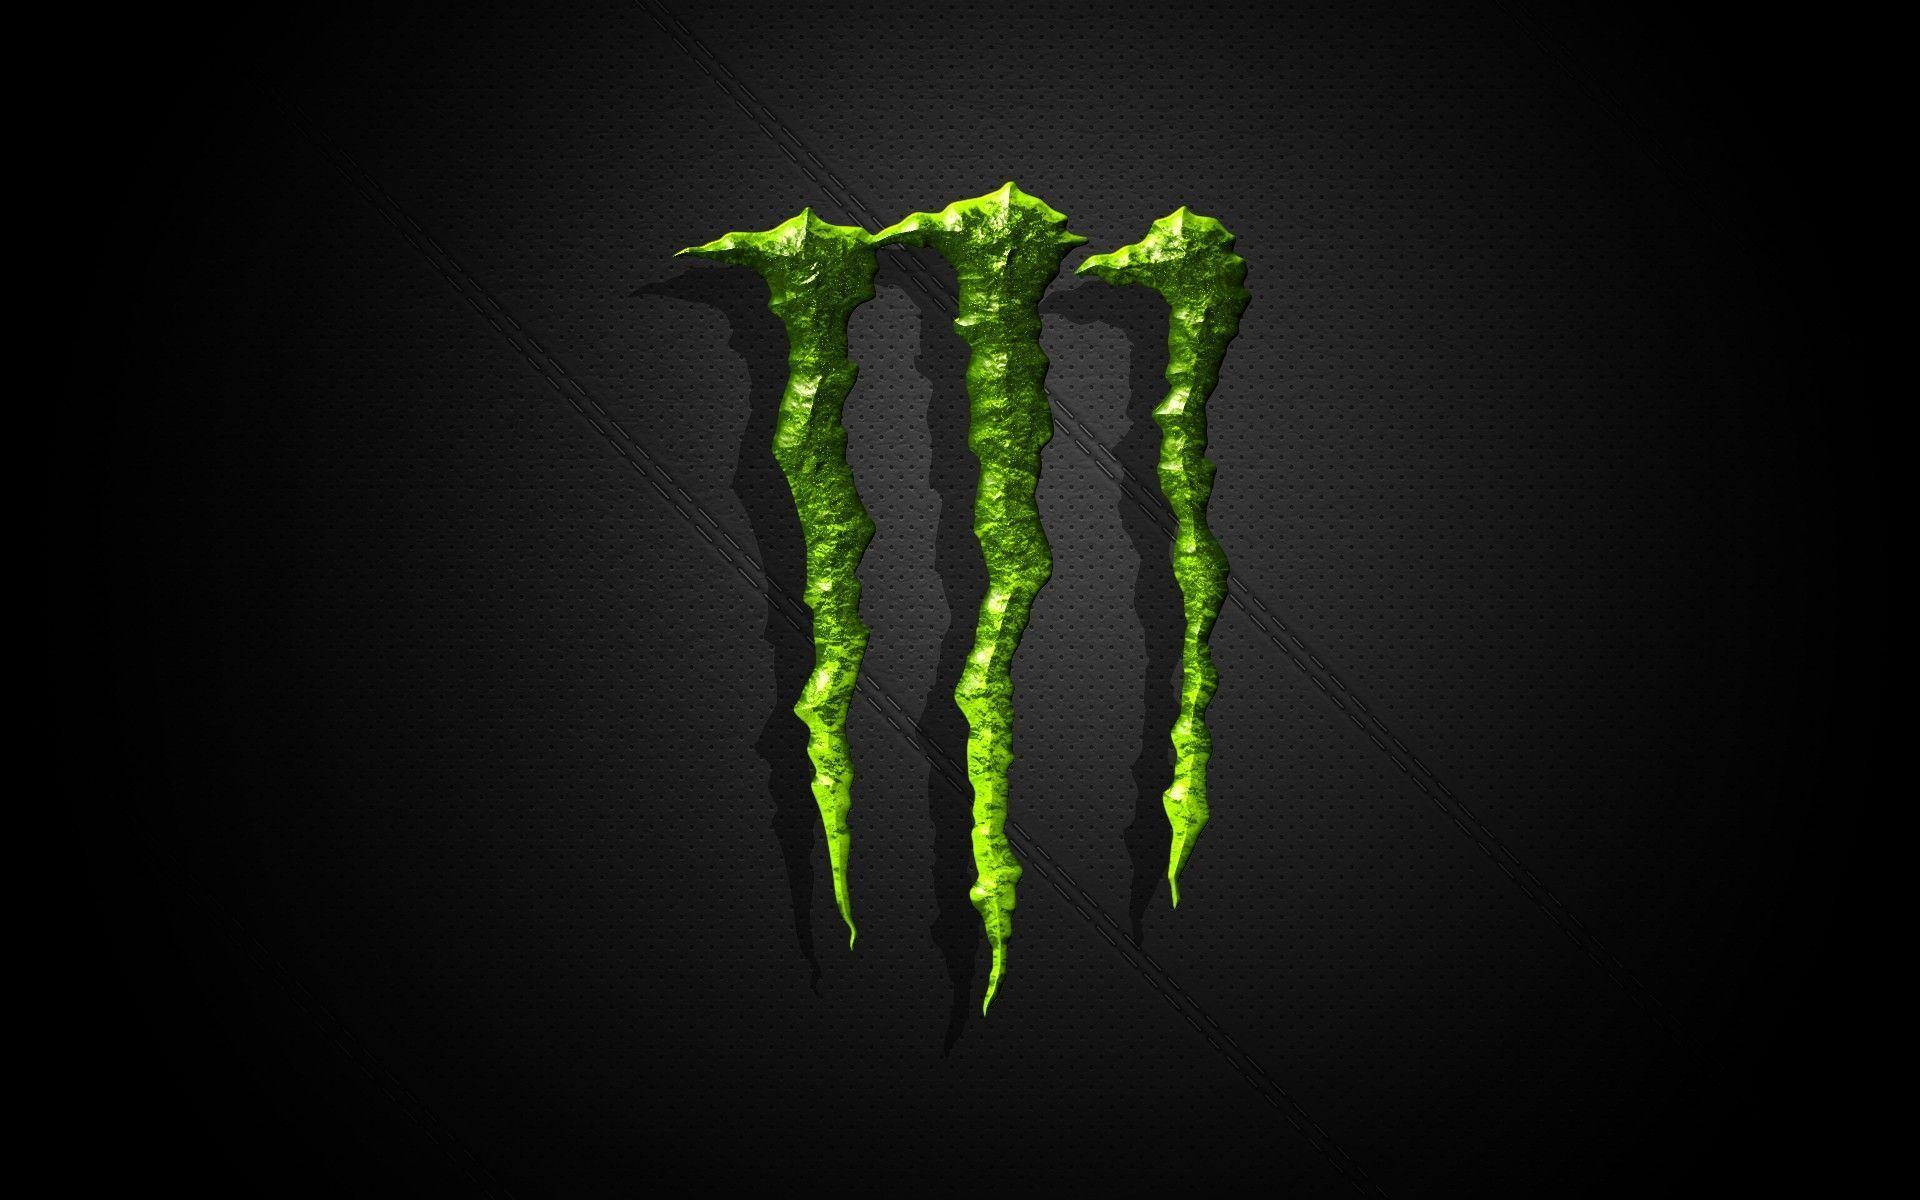 Monster energy wallpapers hd wallpaper cave - Monster energy wallpaper download ...